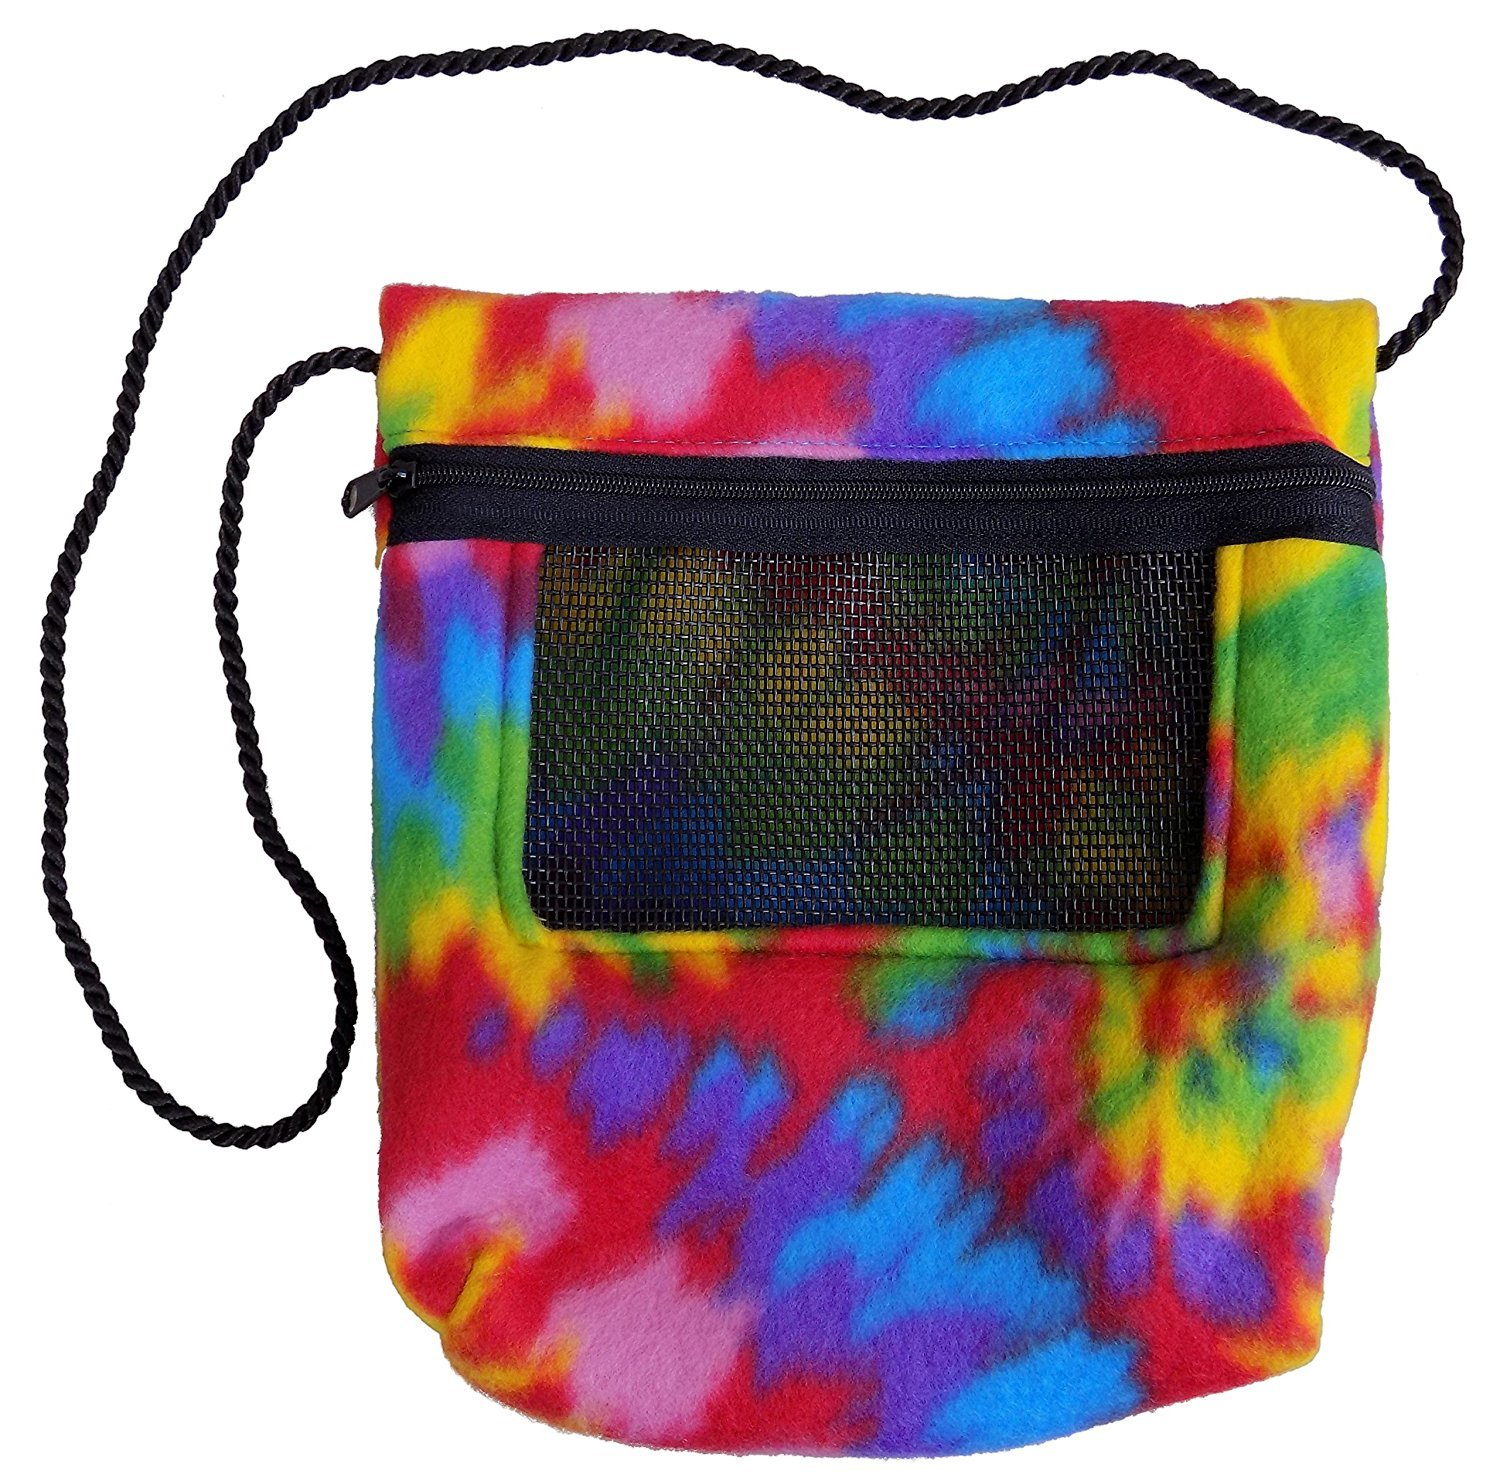 Bonding Carry Pouch for Sugar Gliders and other small pets (Tie Dye) SunCoast Sugar Gliders